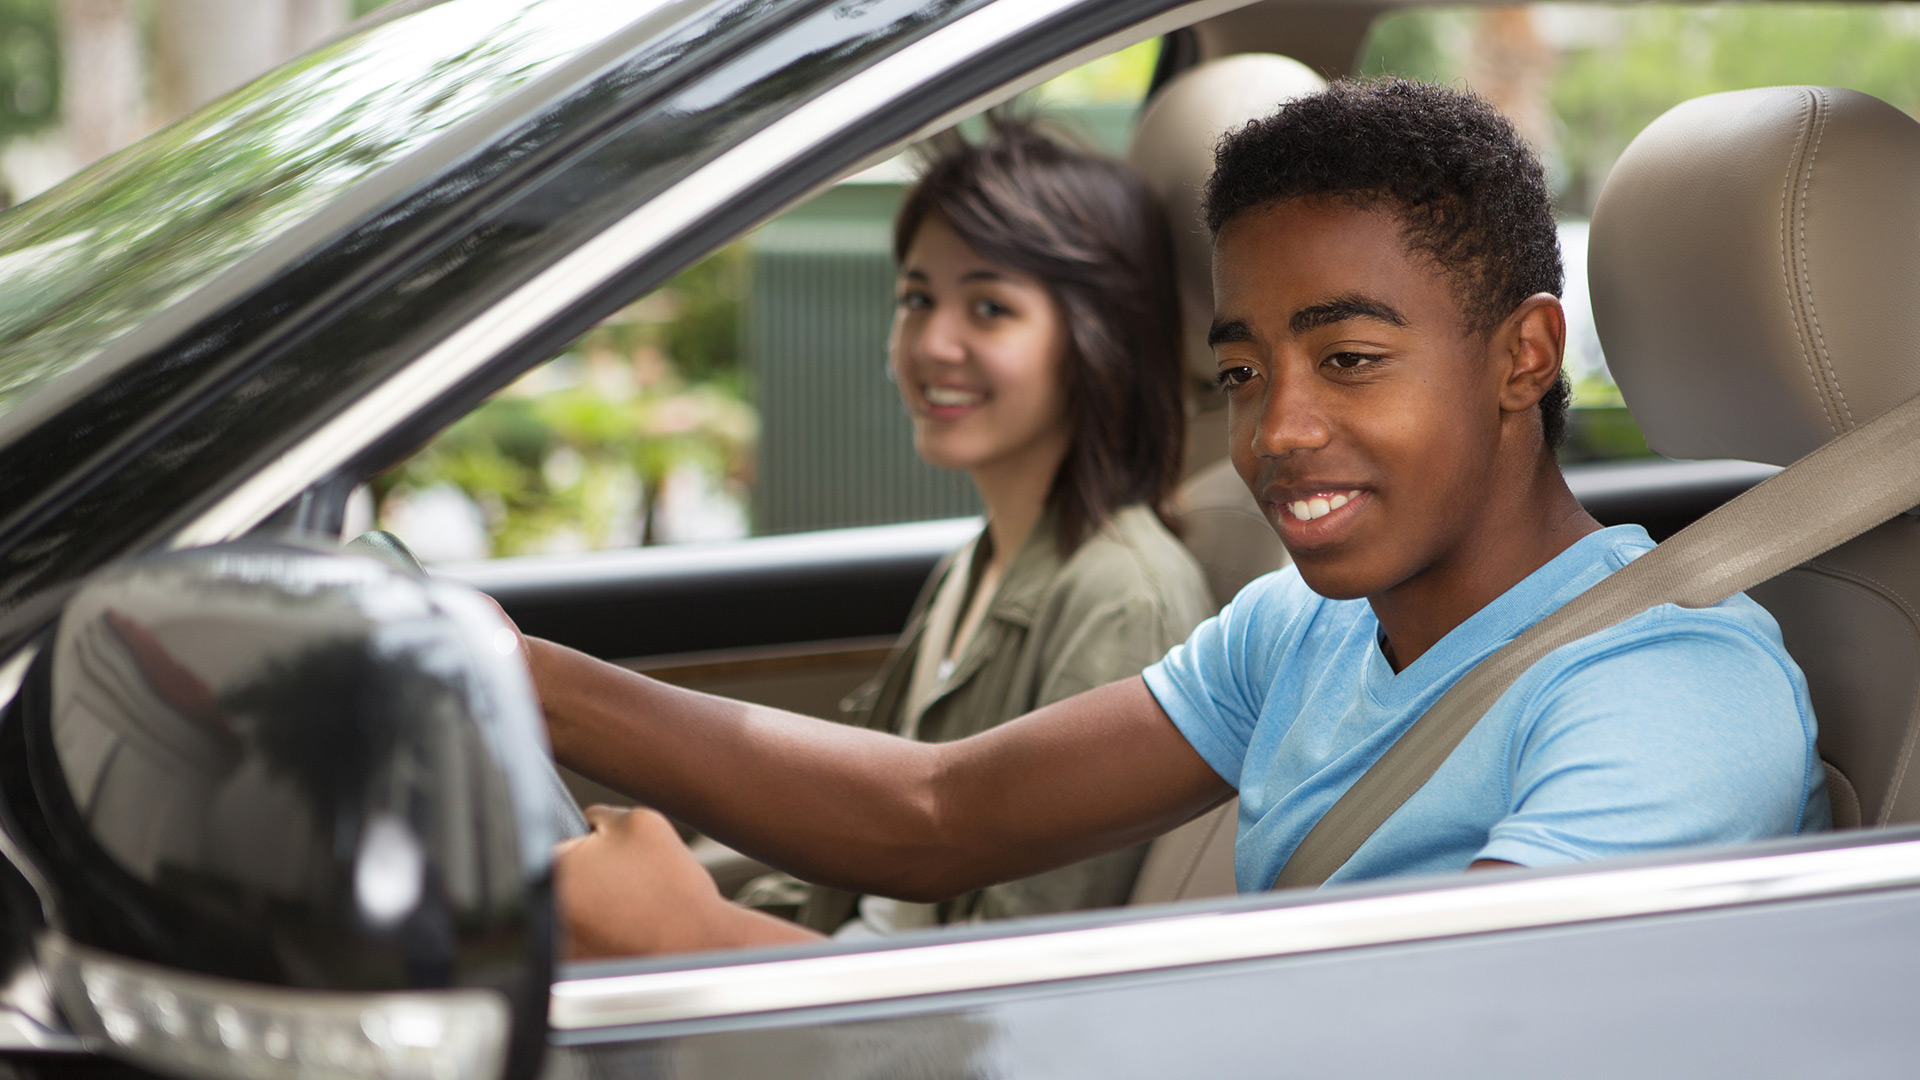 Learning to drive is a rite of passage and parents can play a vital role in their teenagers' development behind the steering wheel.